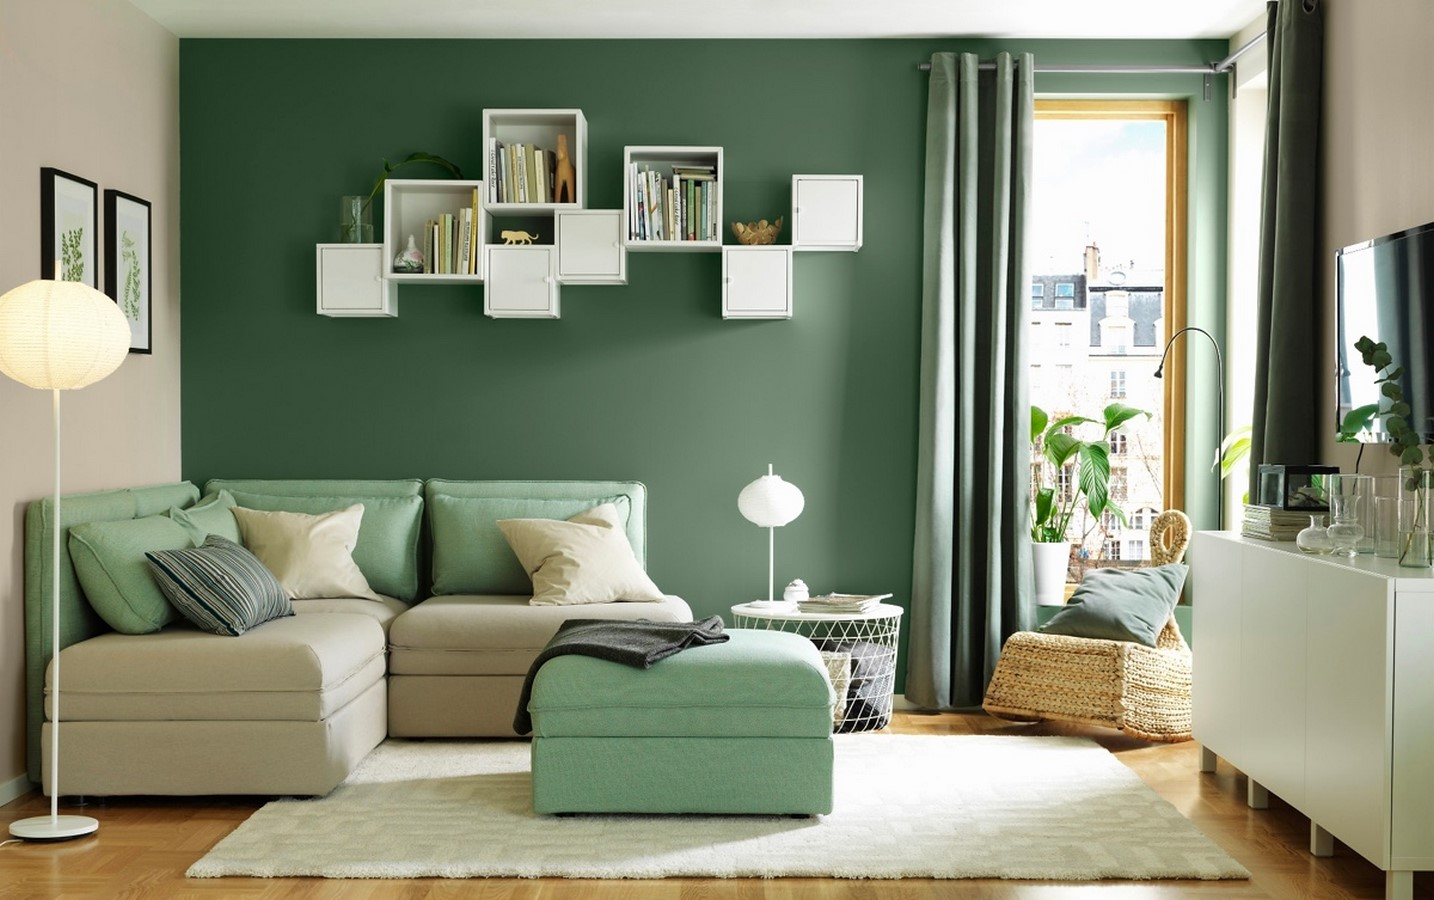 How to enhance Soft Furnishing Aesthetics in your house? - Sheet2